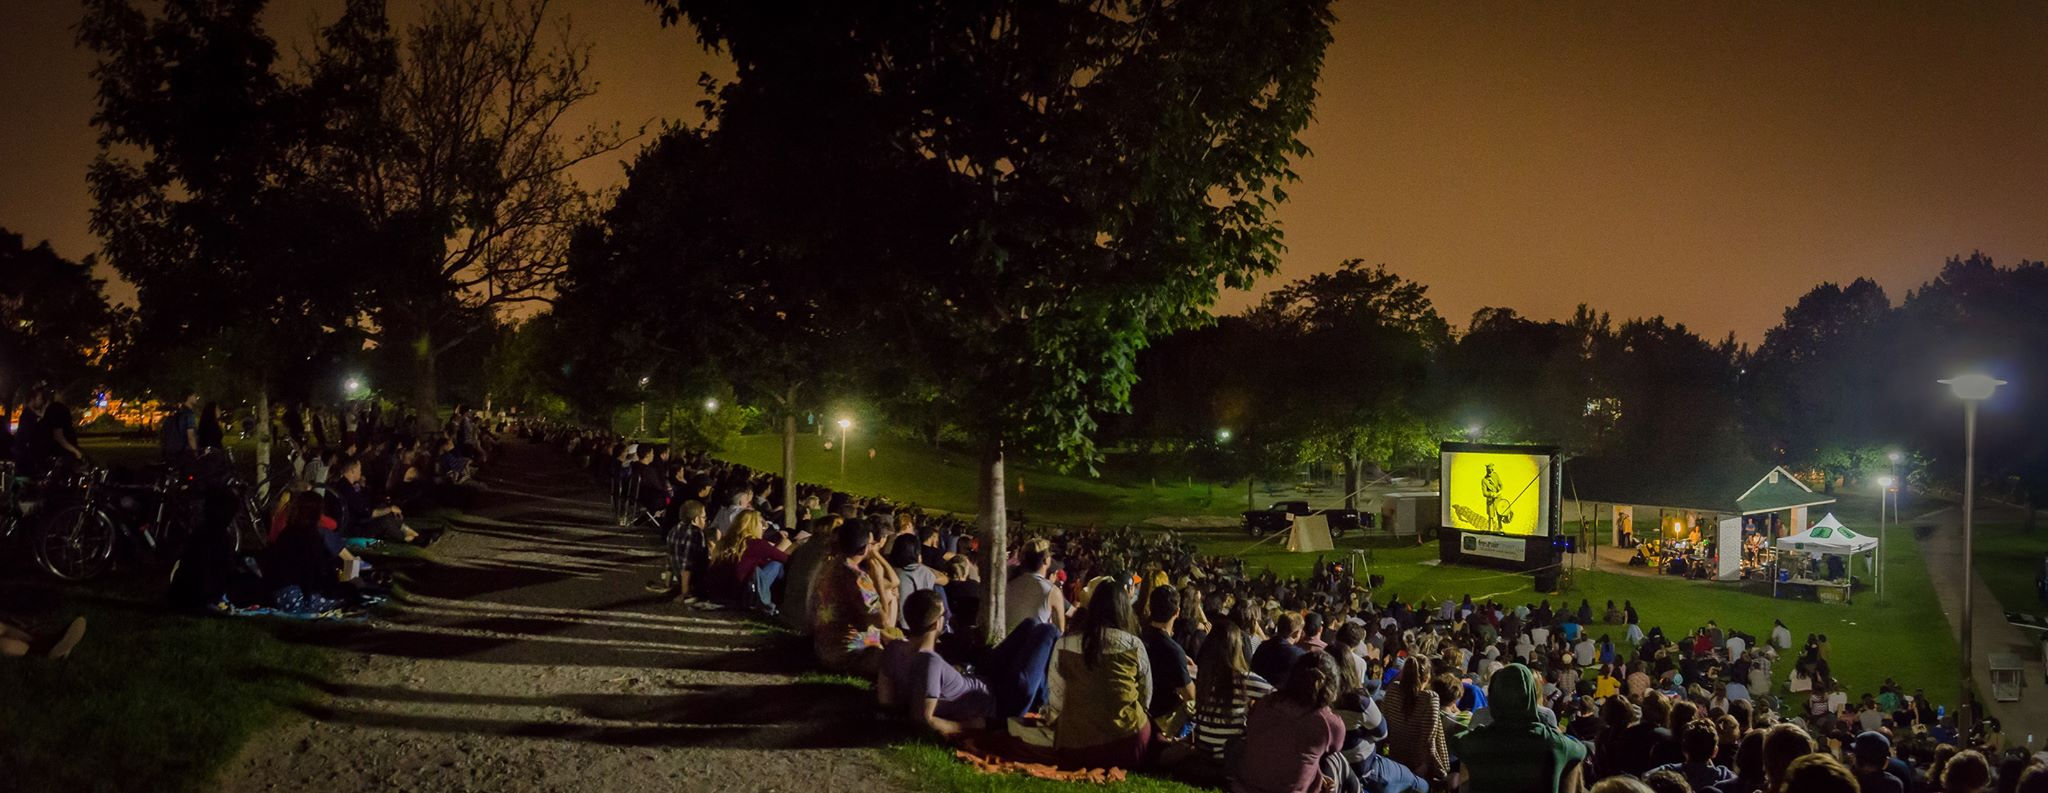 7 free outdoor movie screenings you should attend in Toronto this summer